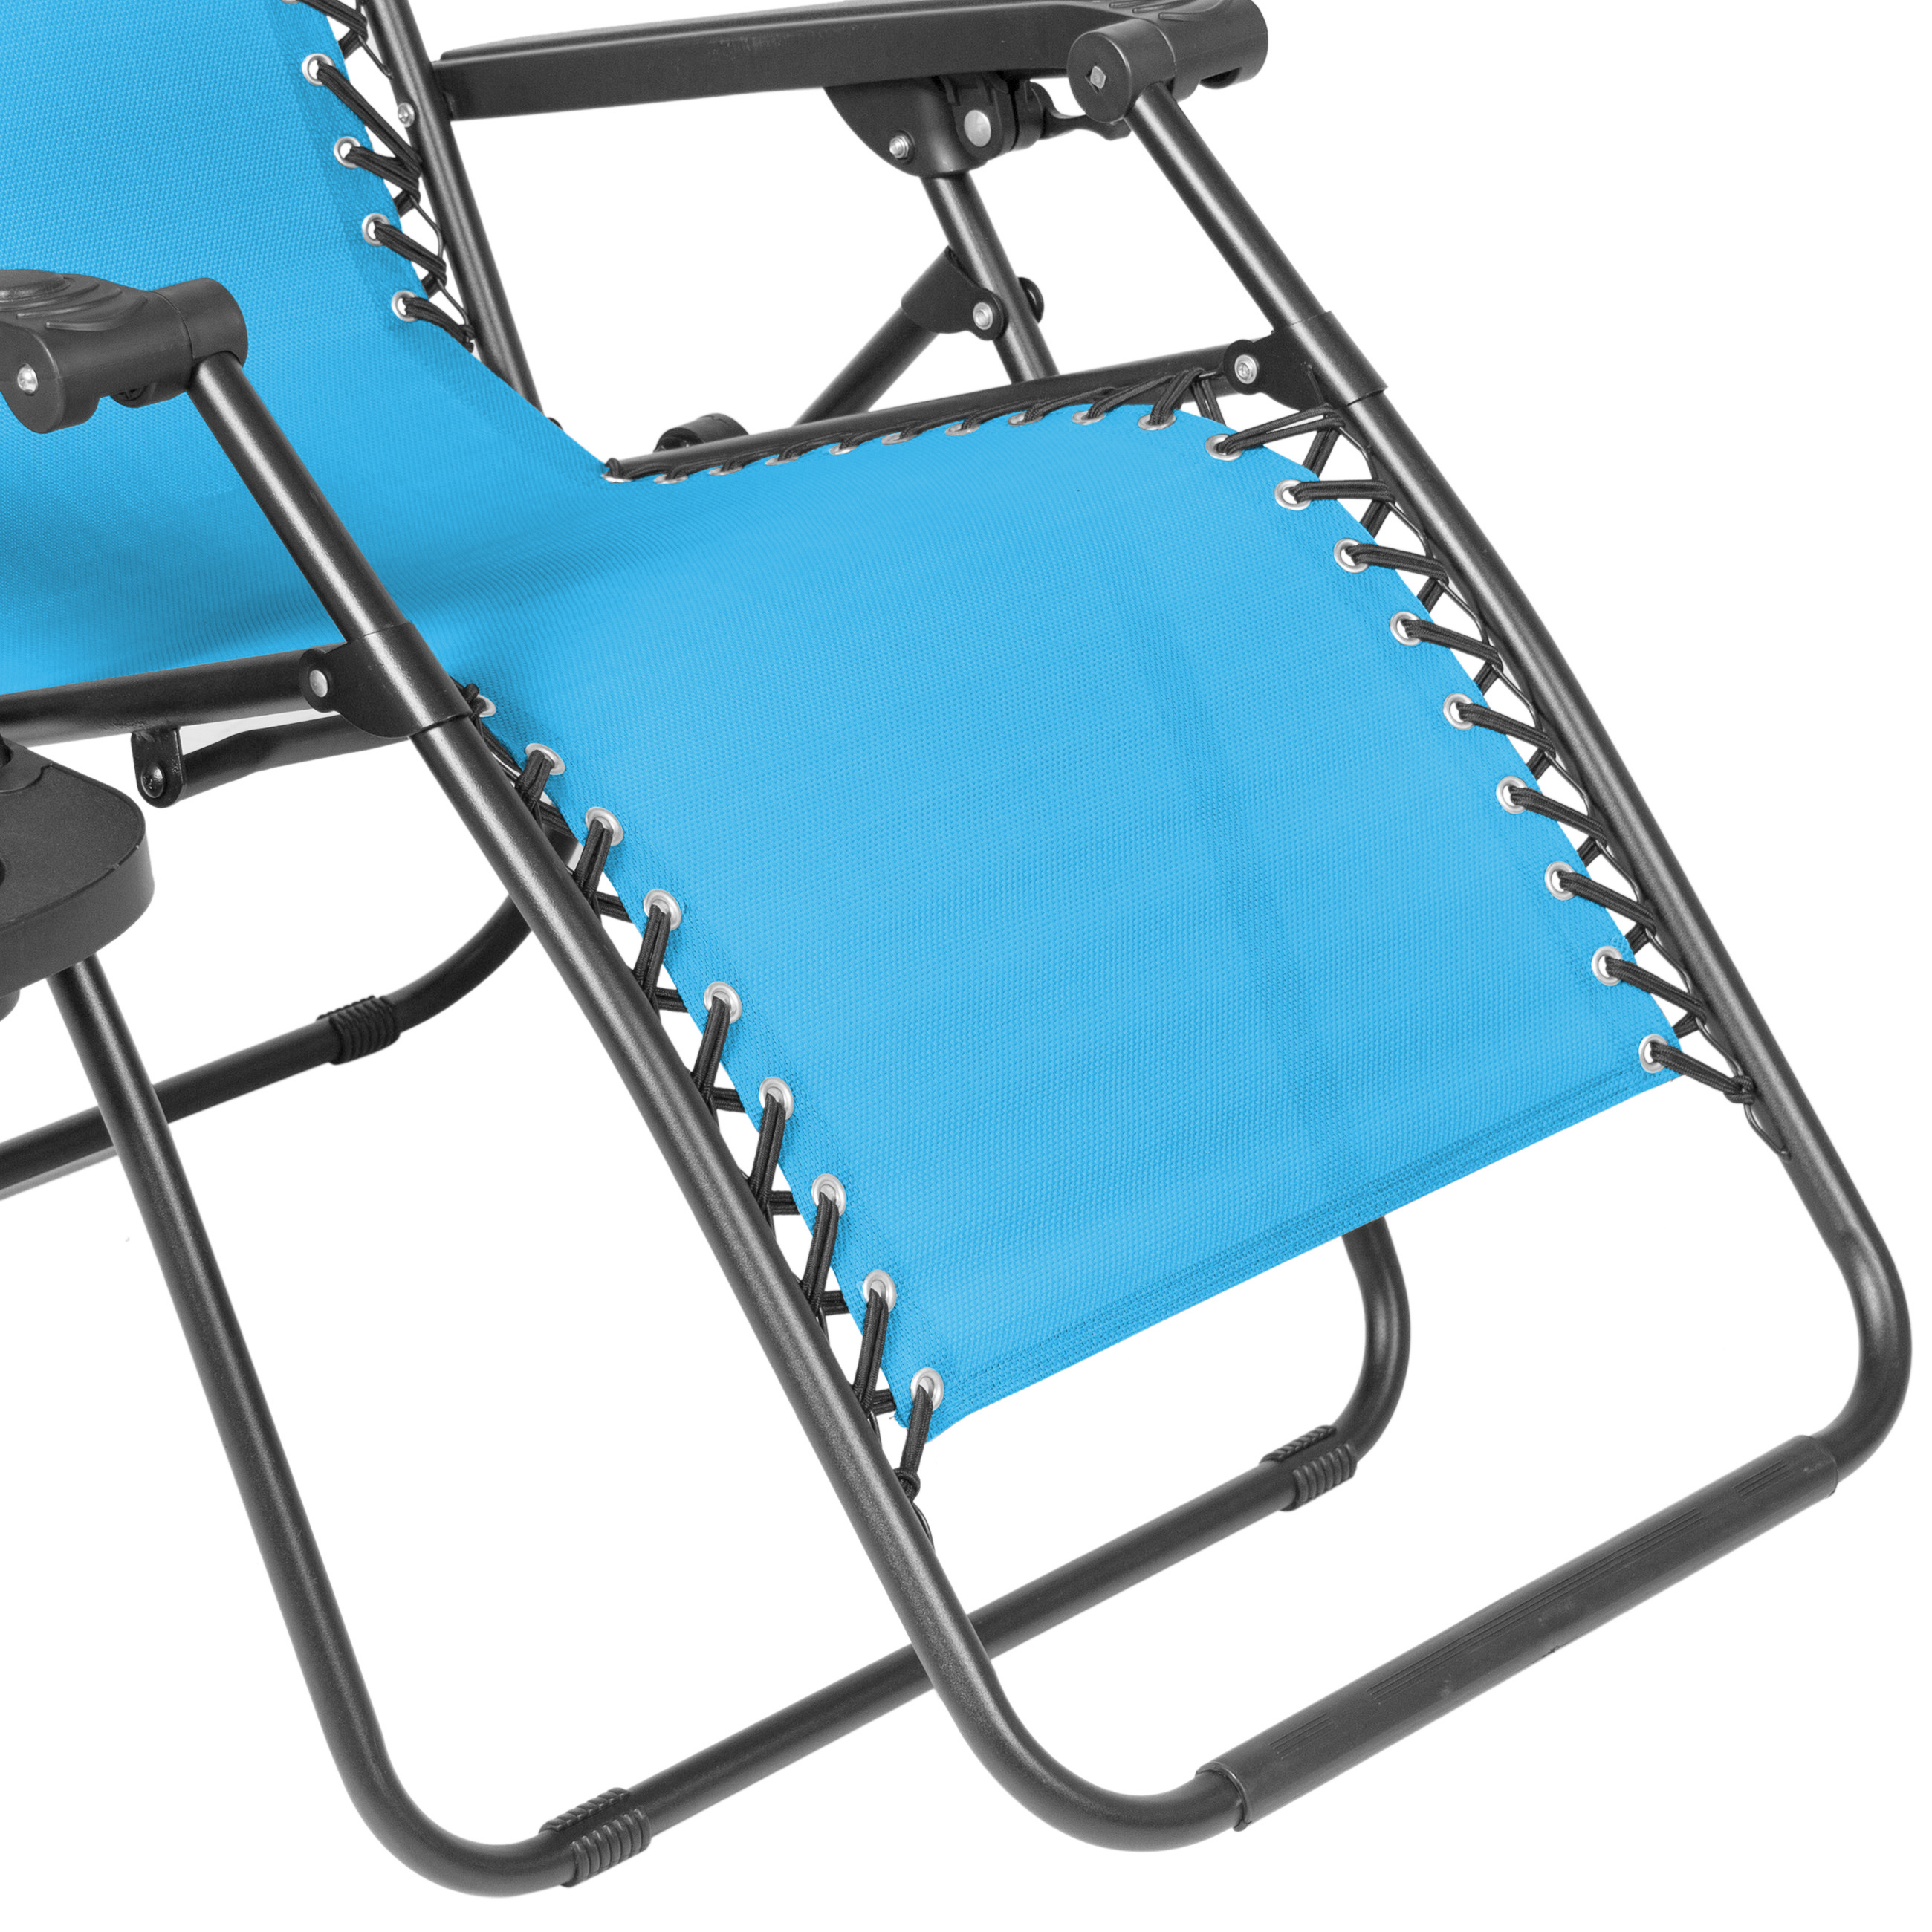 BCP-Folding-Zero-Gravity-Recliner-Lounge-Chair-w-Canopy-Cup-Holder thumbnail 47